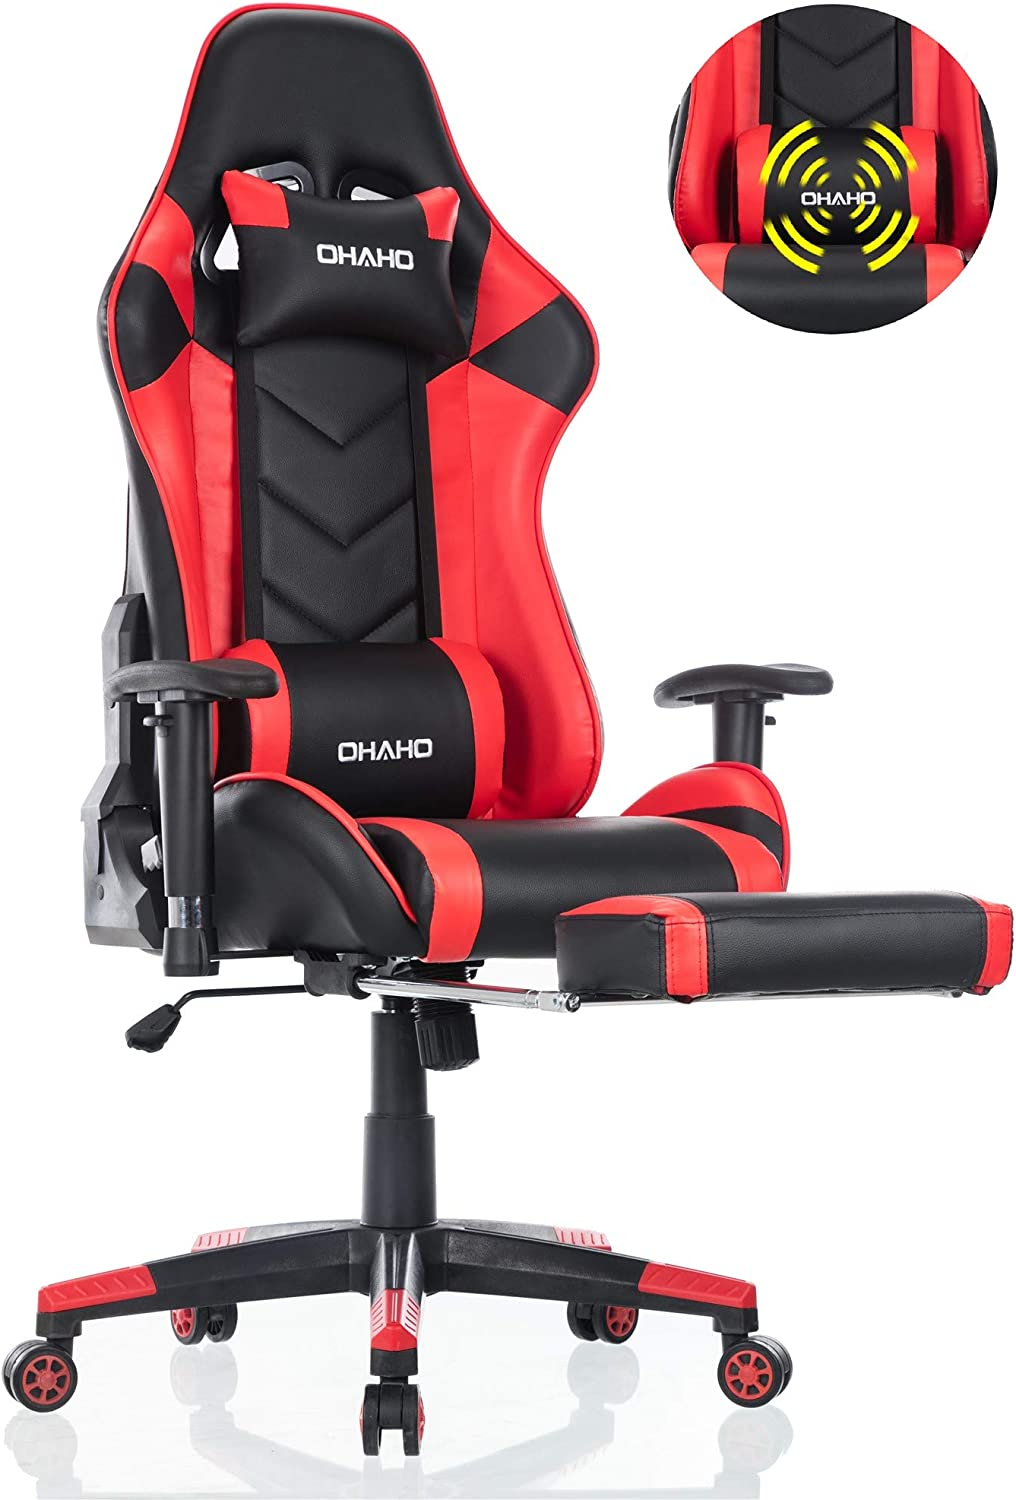 Vitesse Gaming Chair Sillas Gaming Video Gaming Chair Ergonomic Computer Desk Chair High Back Racing Style Comfortable Chair Swivel Executive Leather Chair with Lumbar Support and Headrest Black